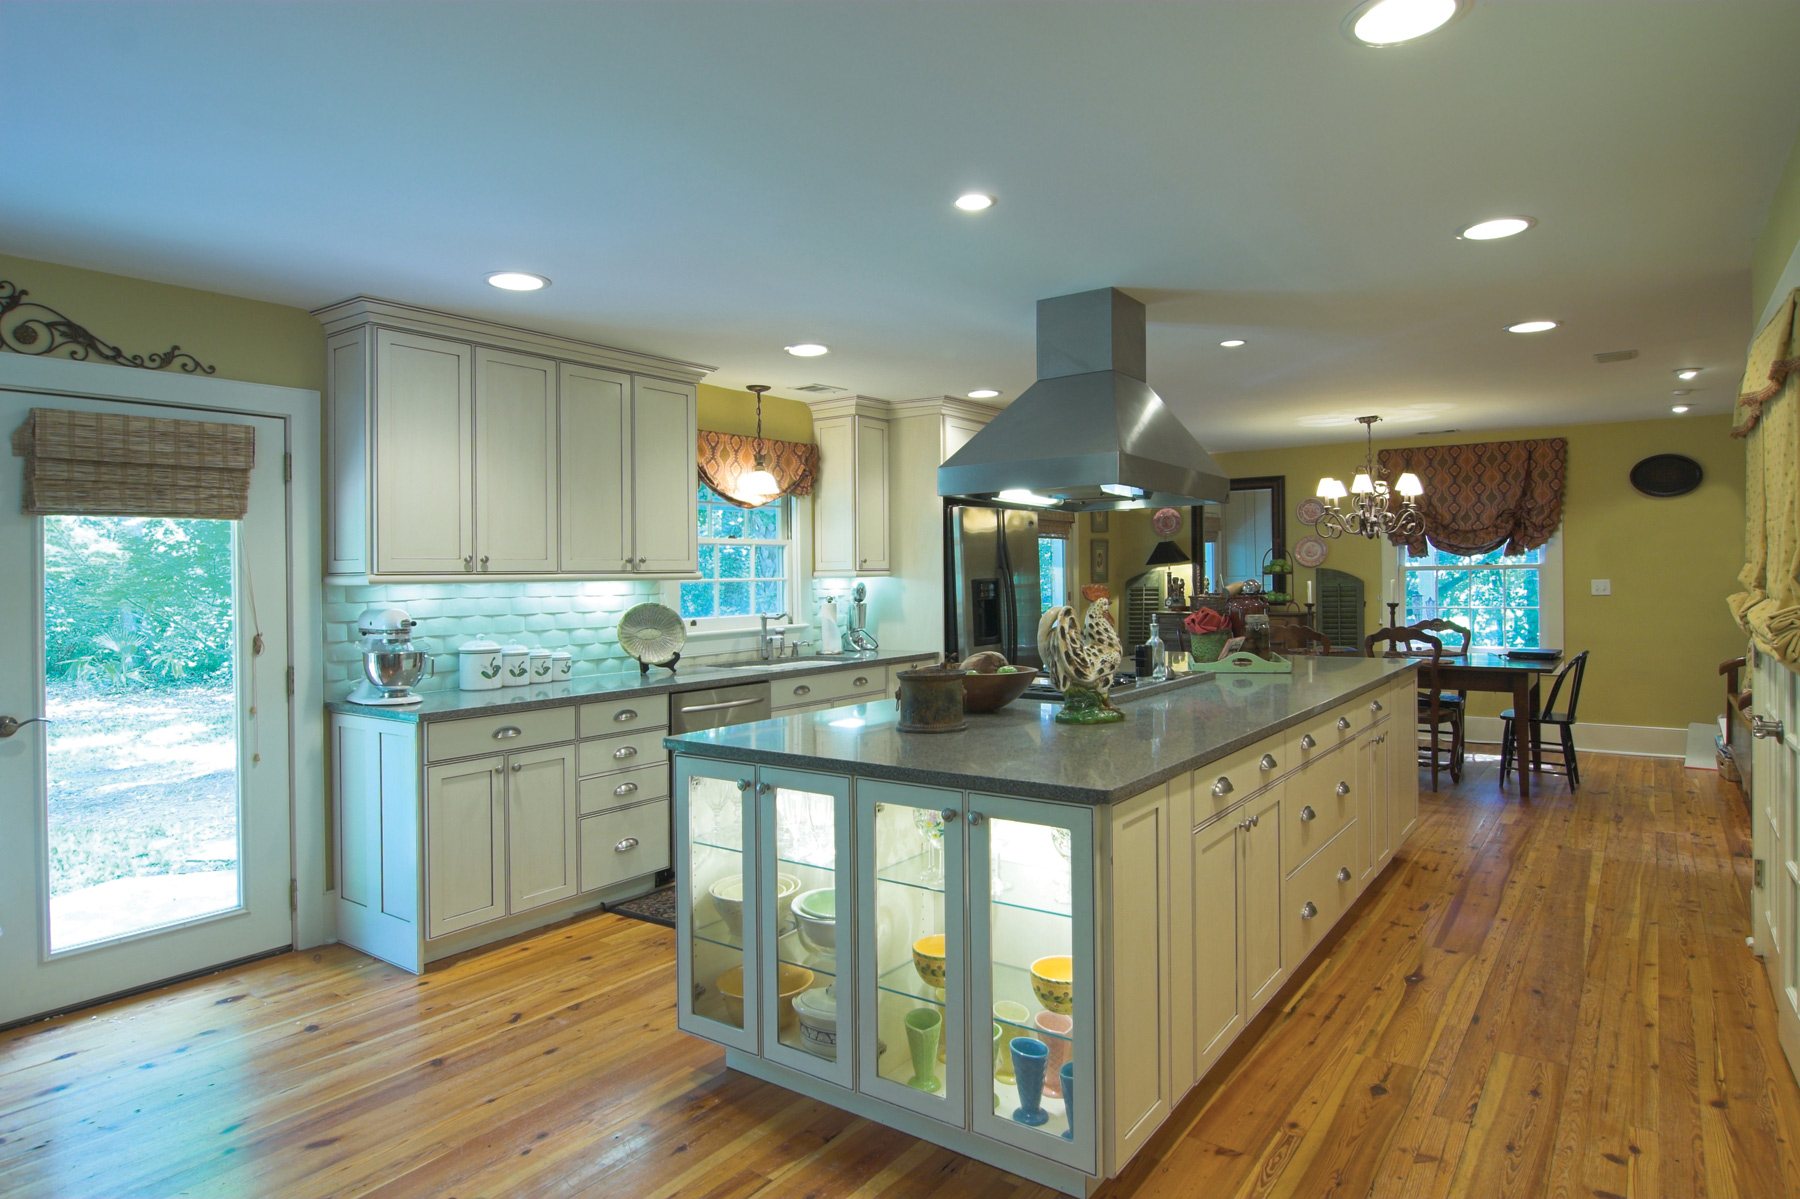 Kitchen Counter Light Using Under Cabinet And Task Lighting For Function And